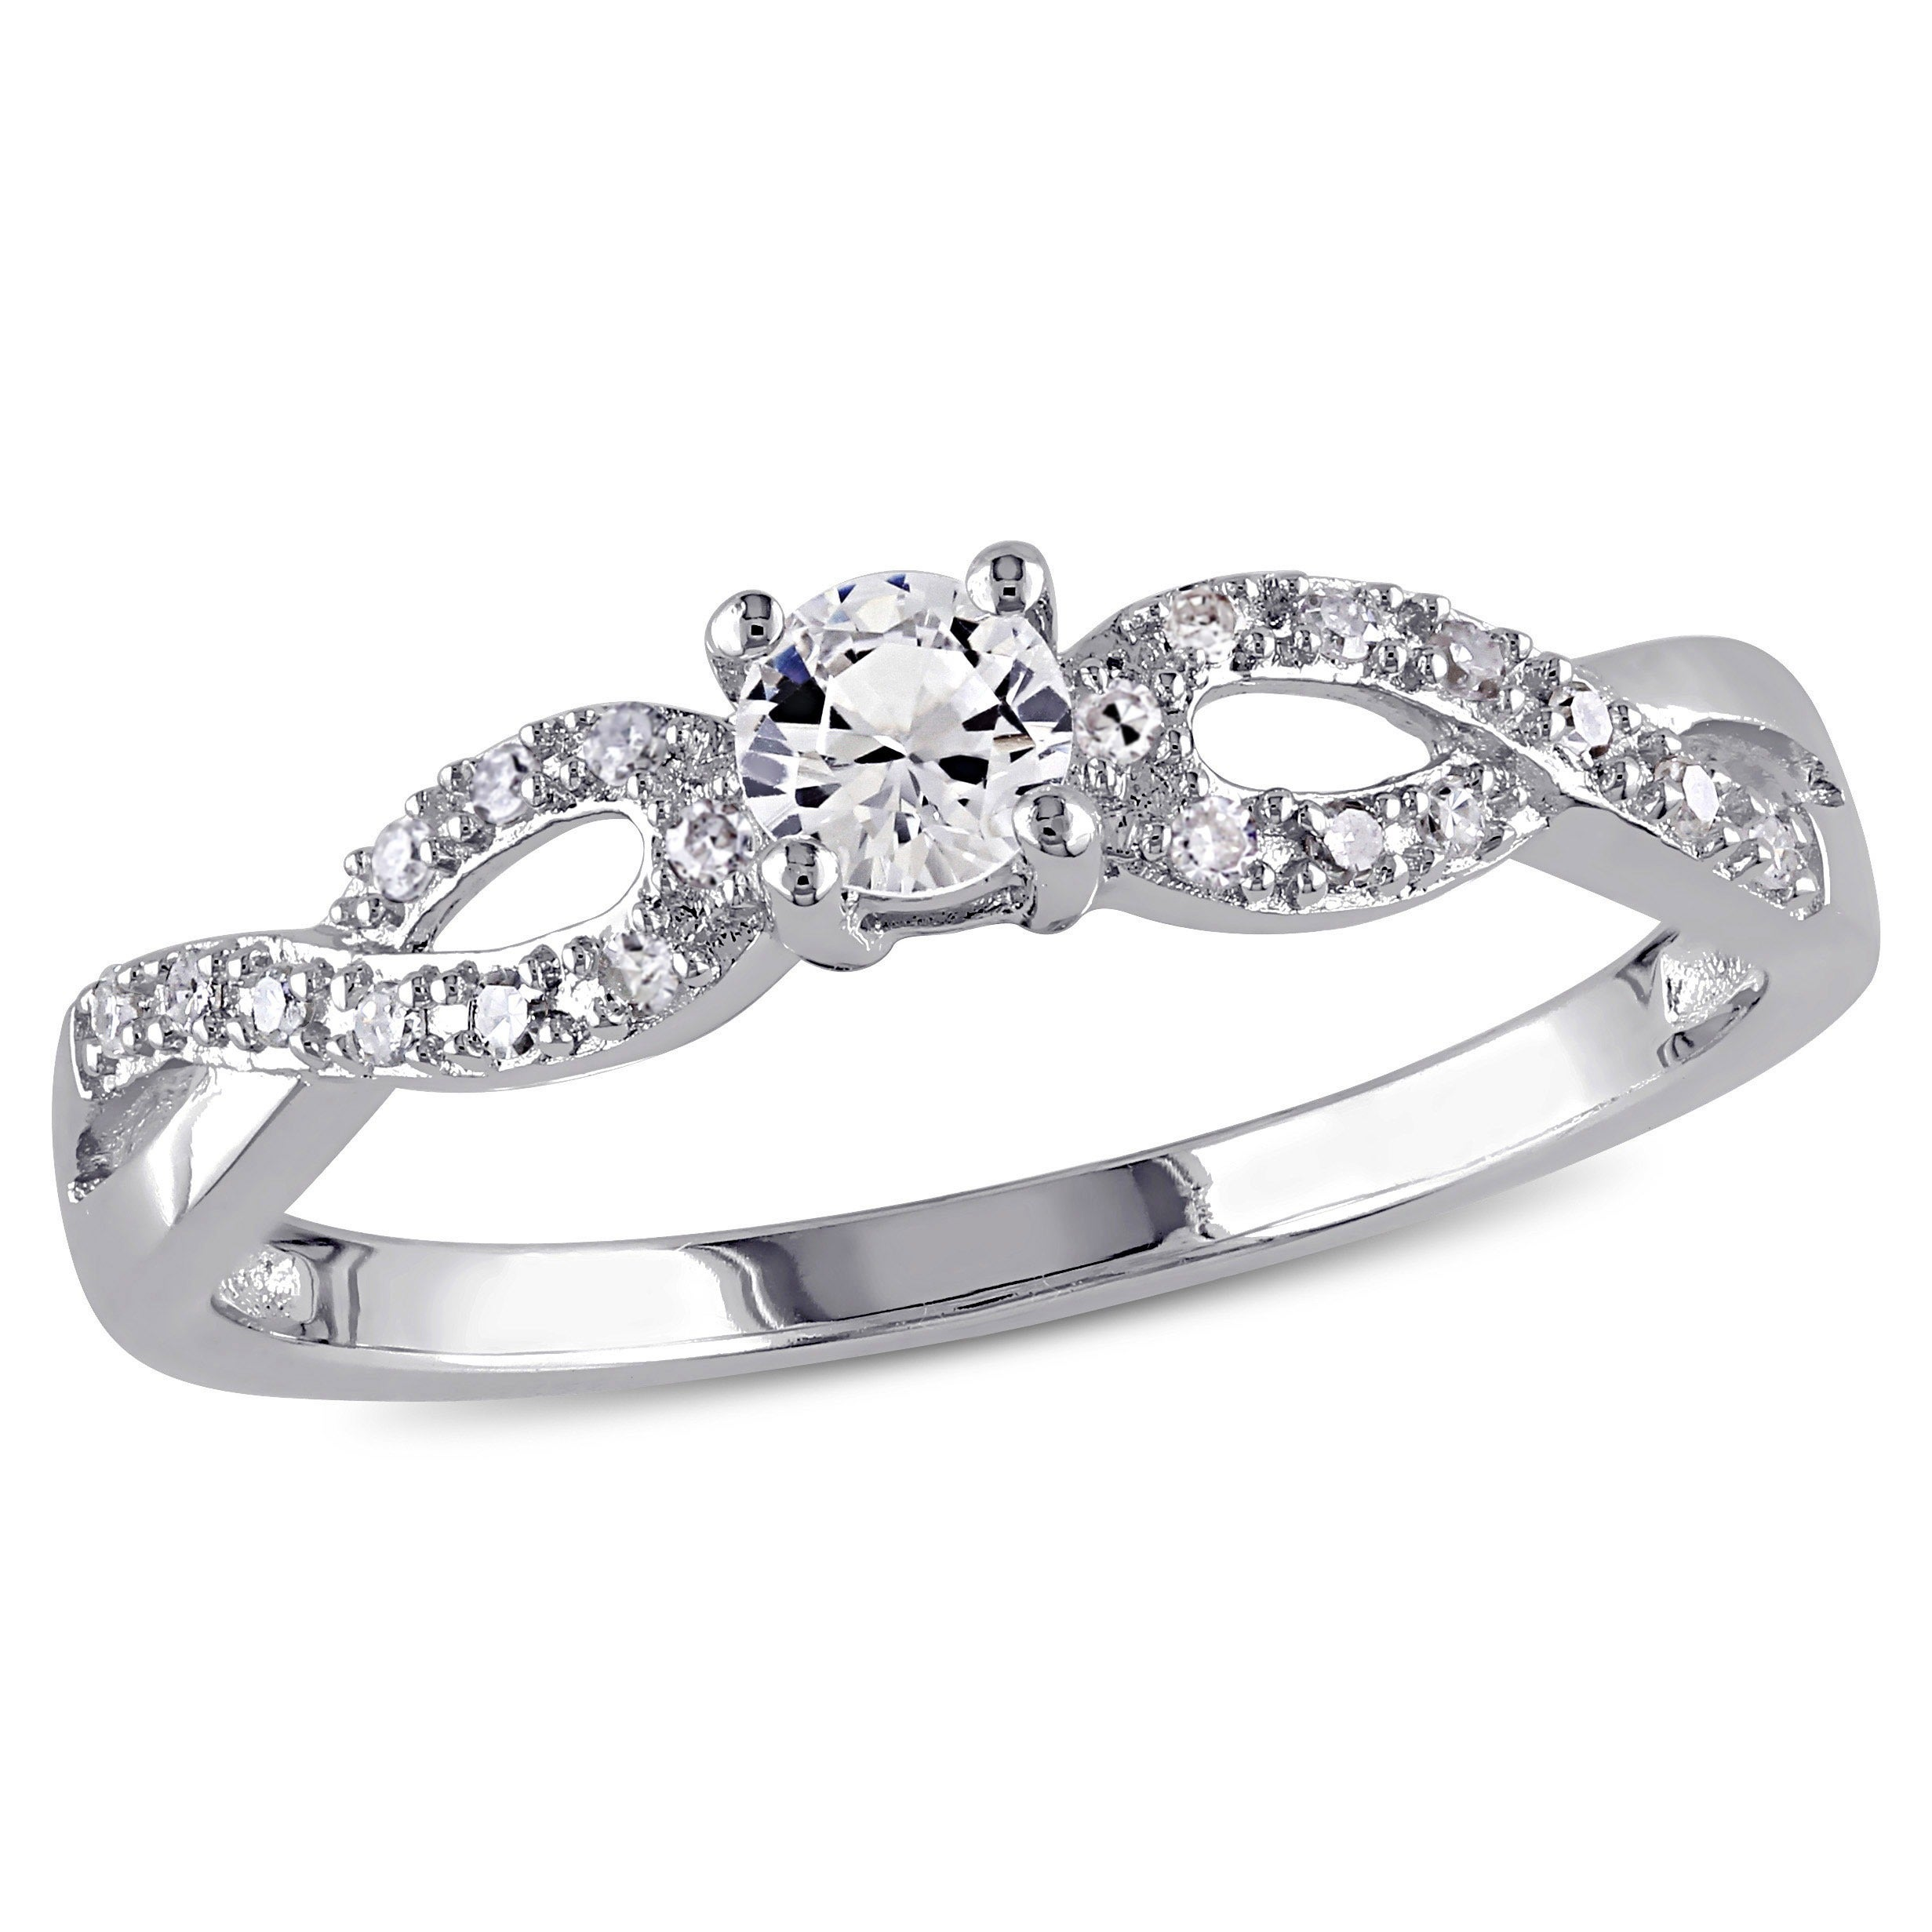 f5f2823996 Miadora Sterling Silver Created White Sapphire and 1/10ct TDW Diamond  Infinity Promise Ring